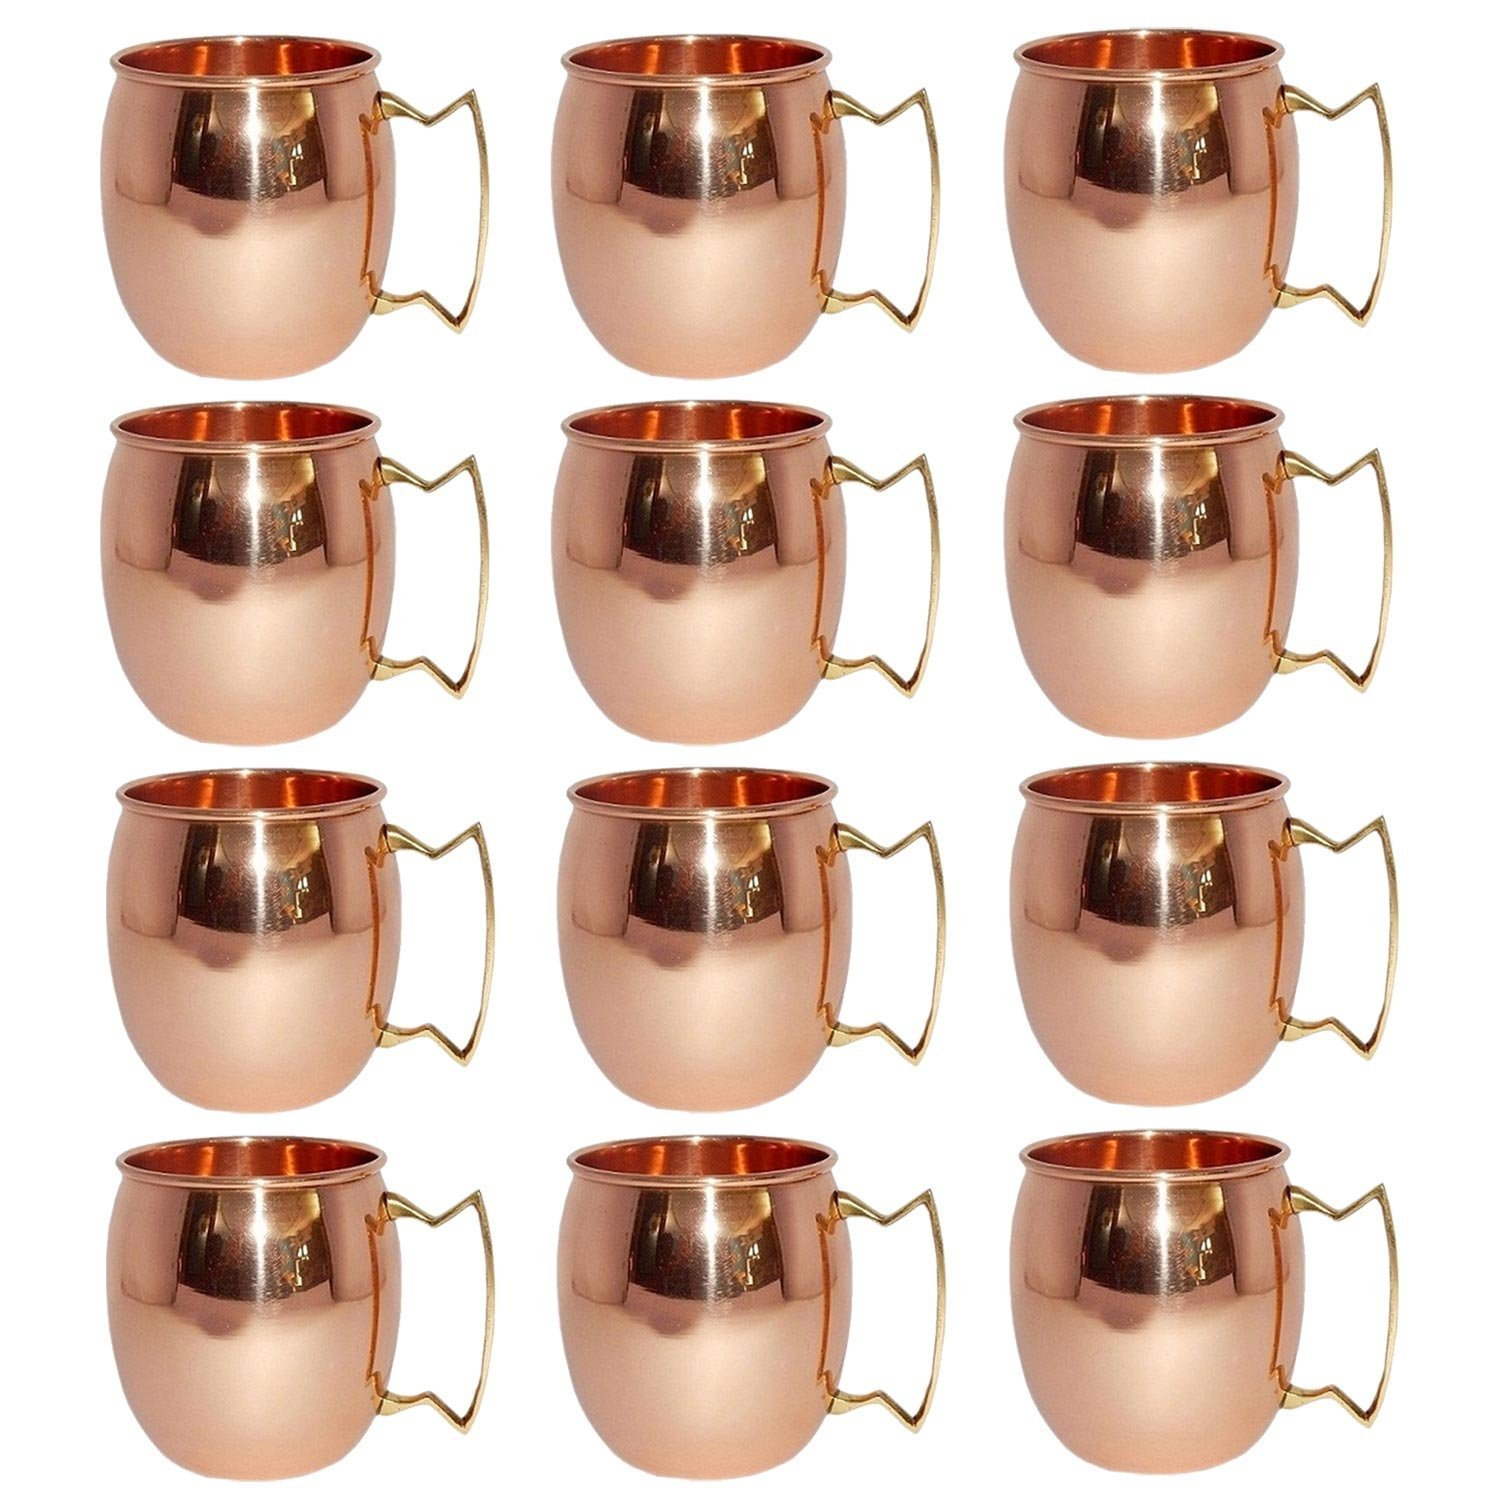 Pack of 12,Solid Copper Mug for Moscow Mules 550 ML / 18 oz 100% Pure Copper Best Quality Lacquered Finish Mule Cup, Moscow Mule Cocktail Cup, Copper Mugs, Cocktail Mugs